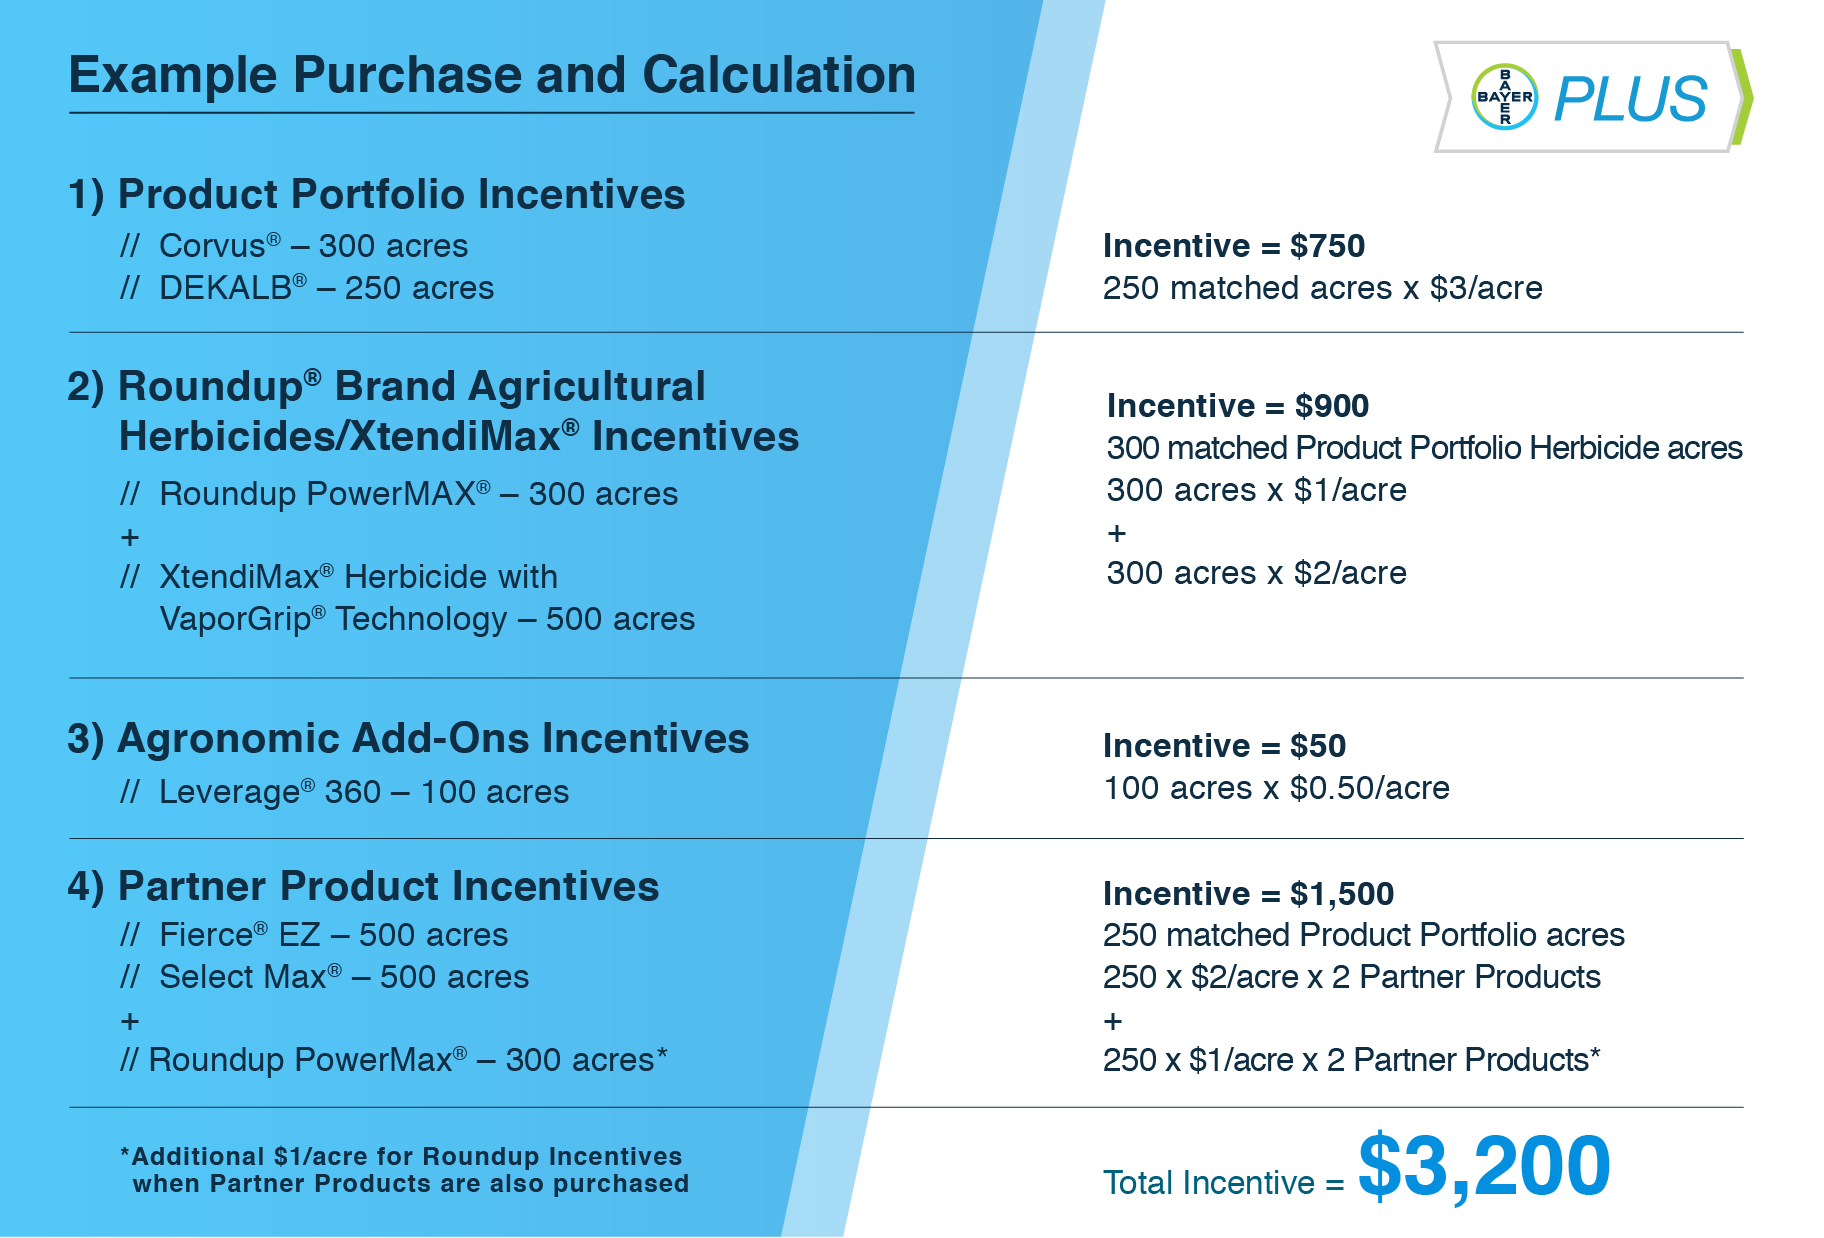 Bayer PLUS Example Purchase and Calculations